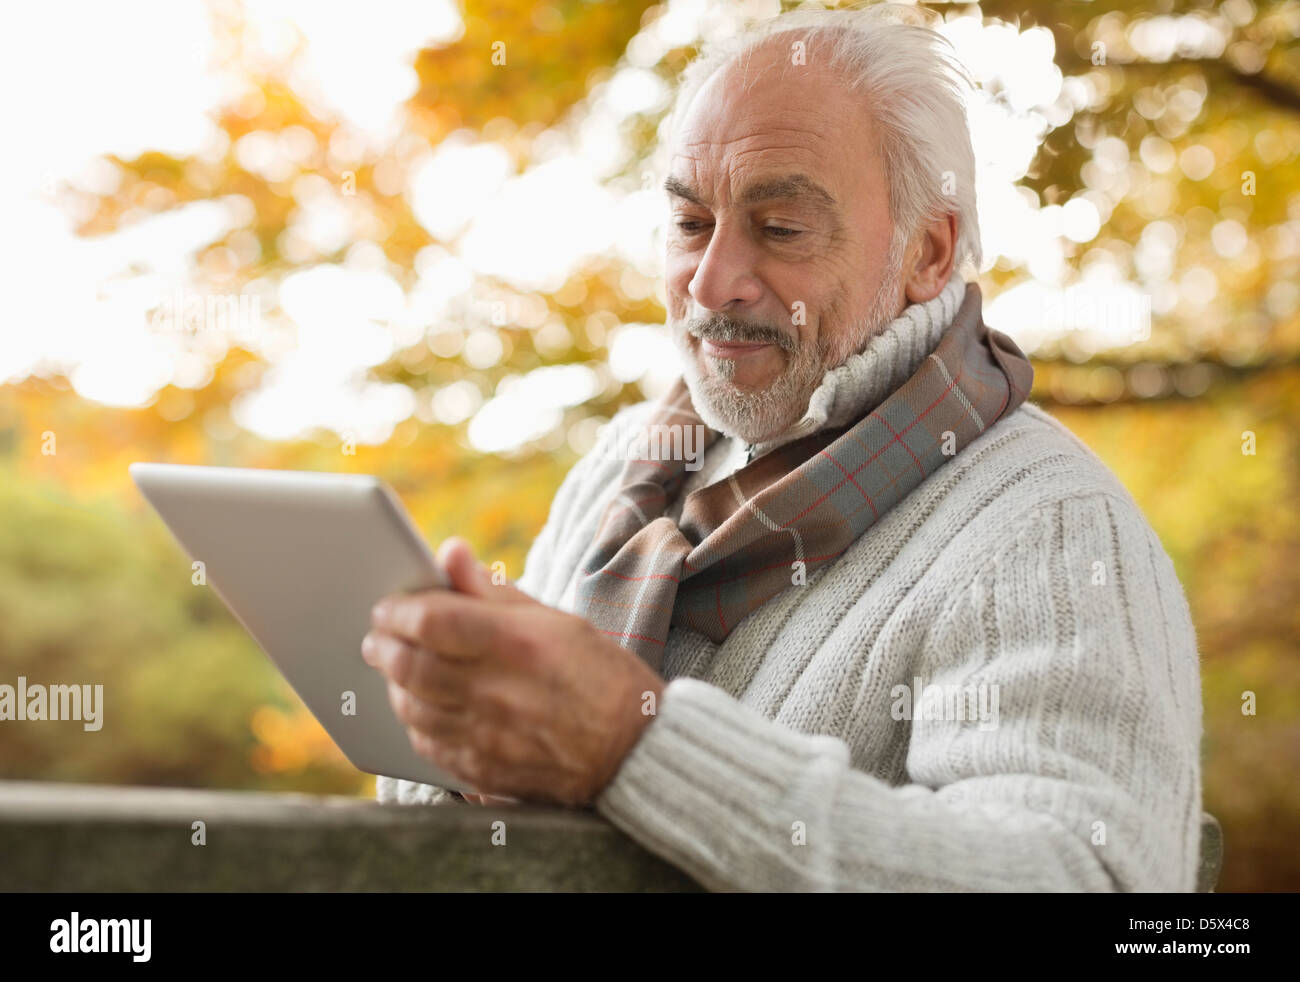 Older man using tablet computer in park - Stock Image